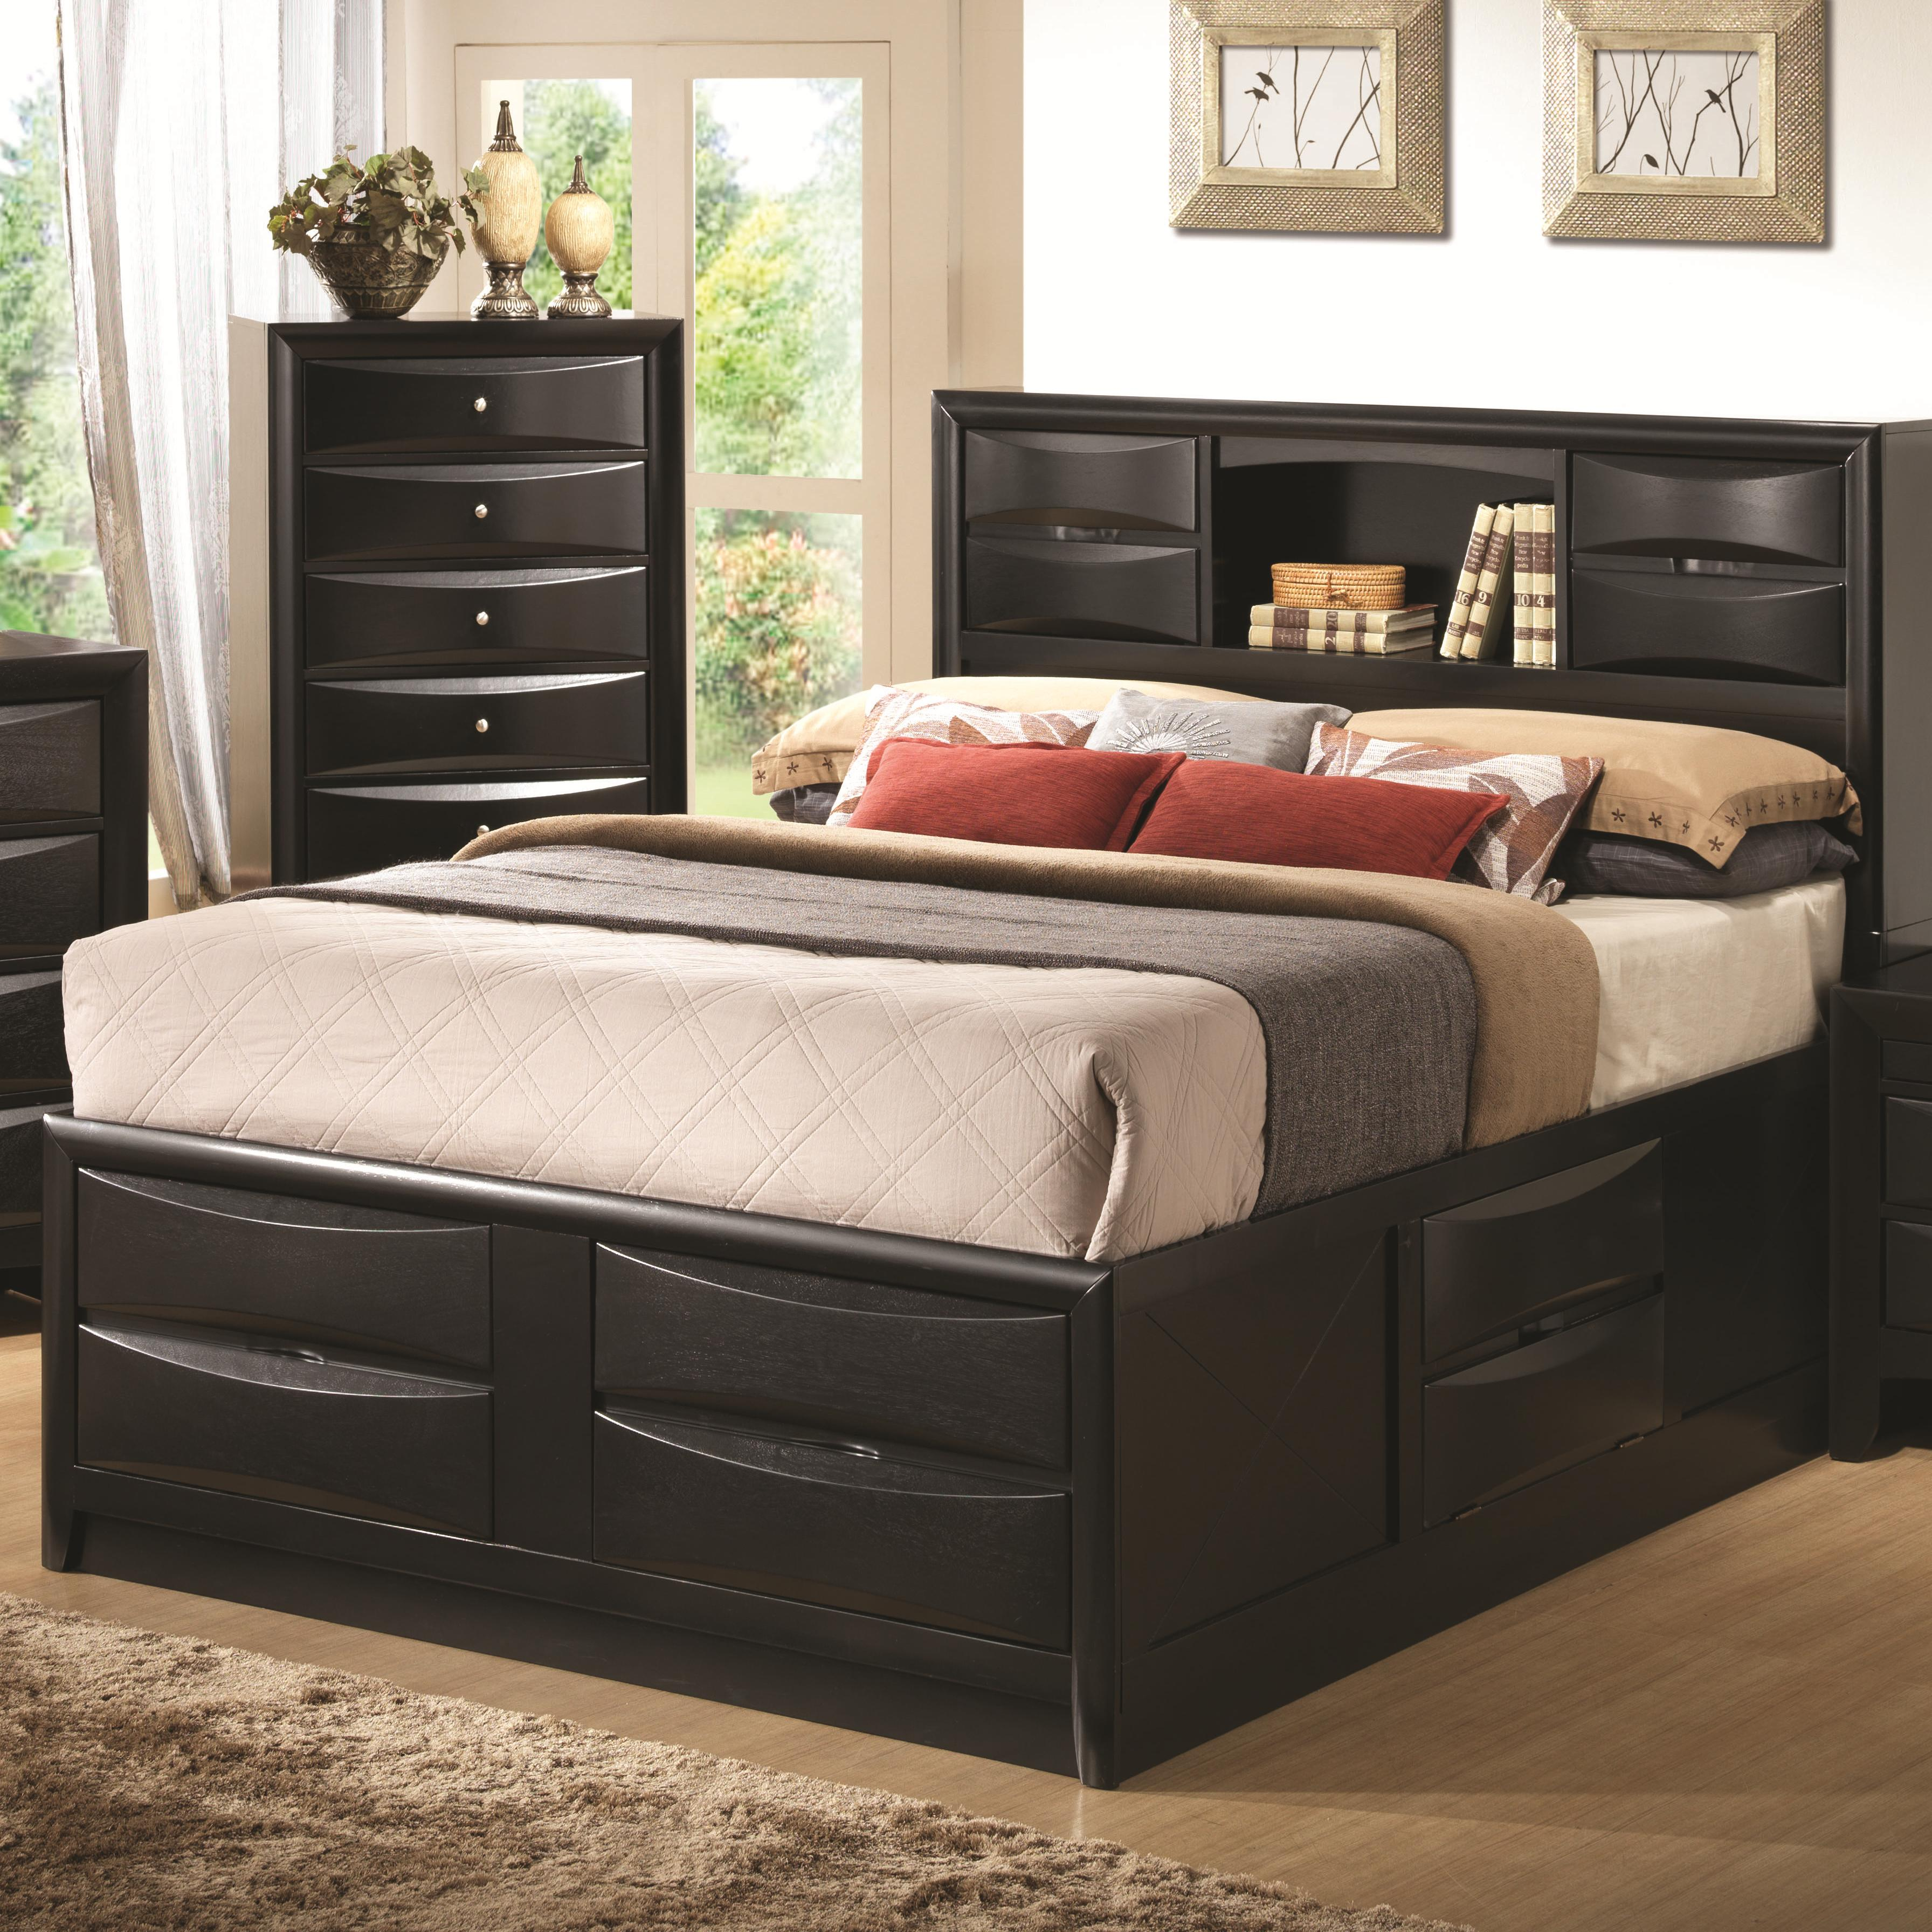 Coaster 202701q Briana Black Bookcase Storage Bed Available In Queen And King Sizes